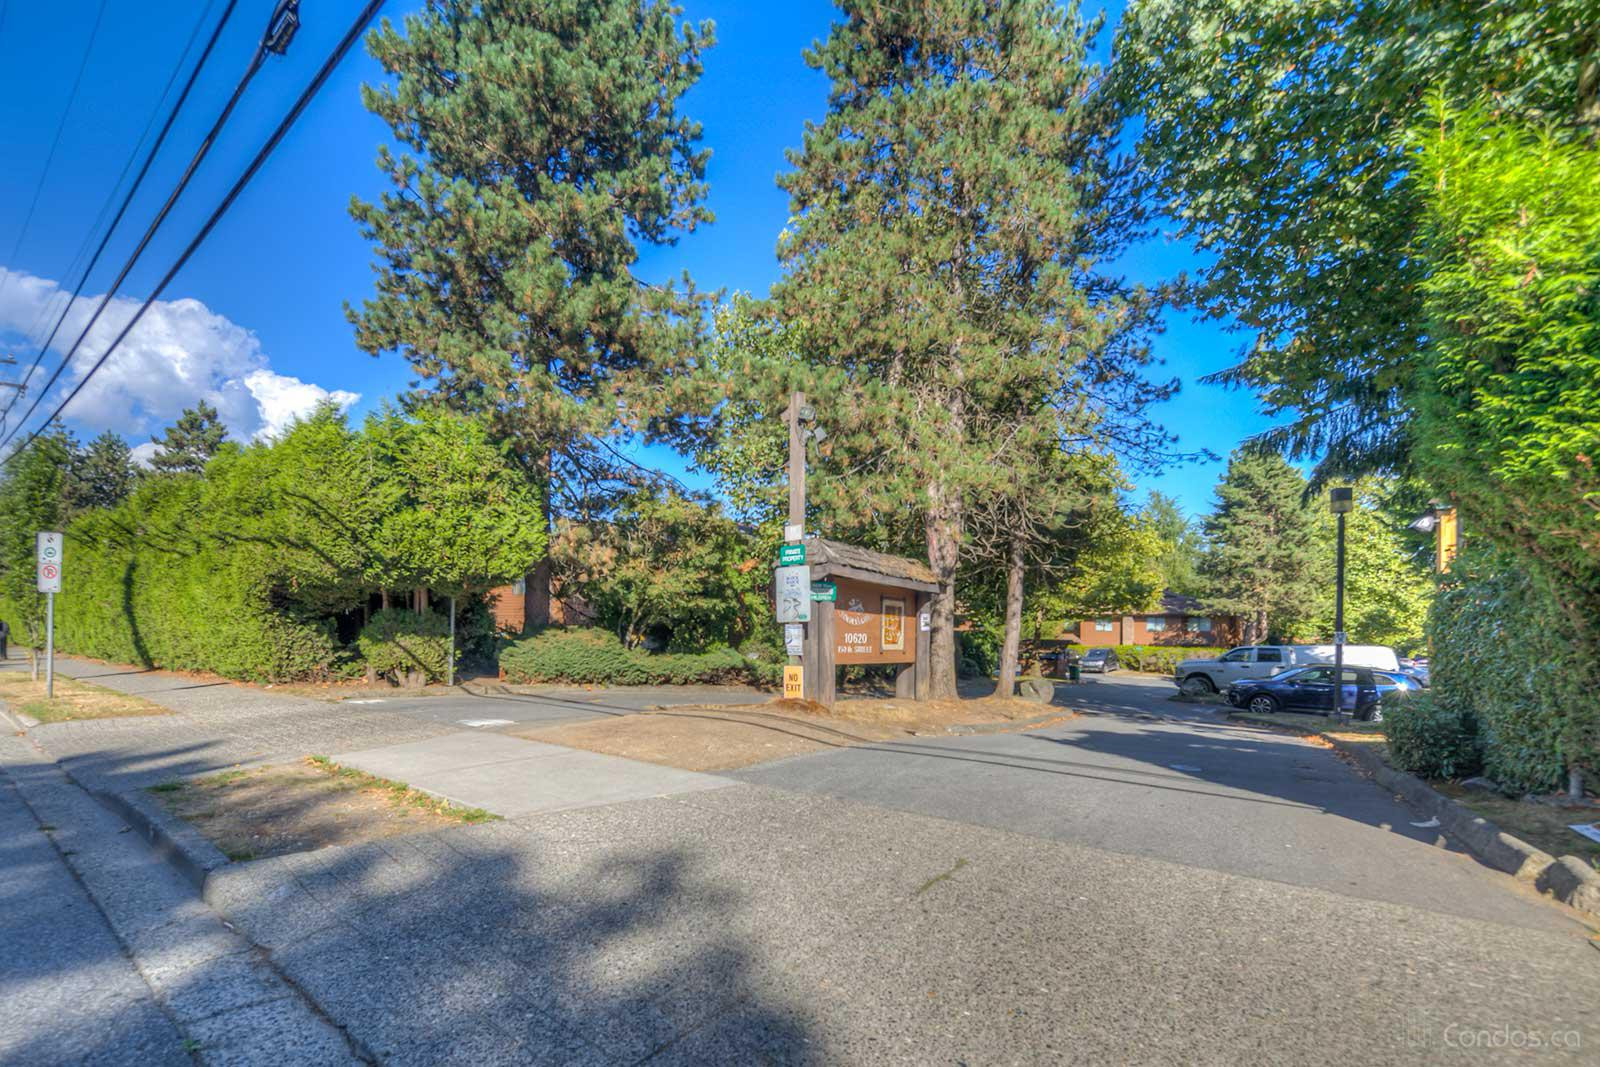 Lincoln's Gate at 10620 150 St, Surrey 1